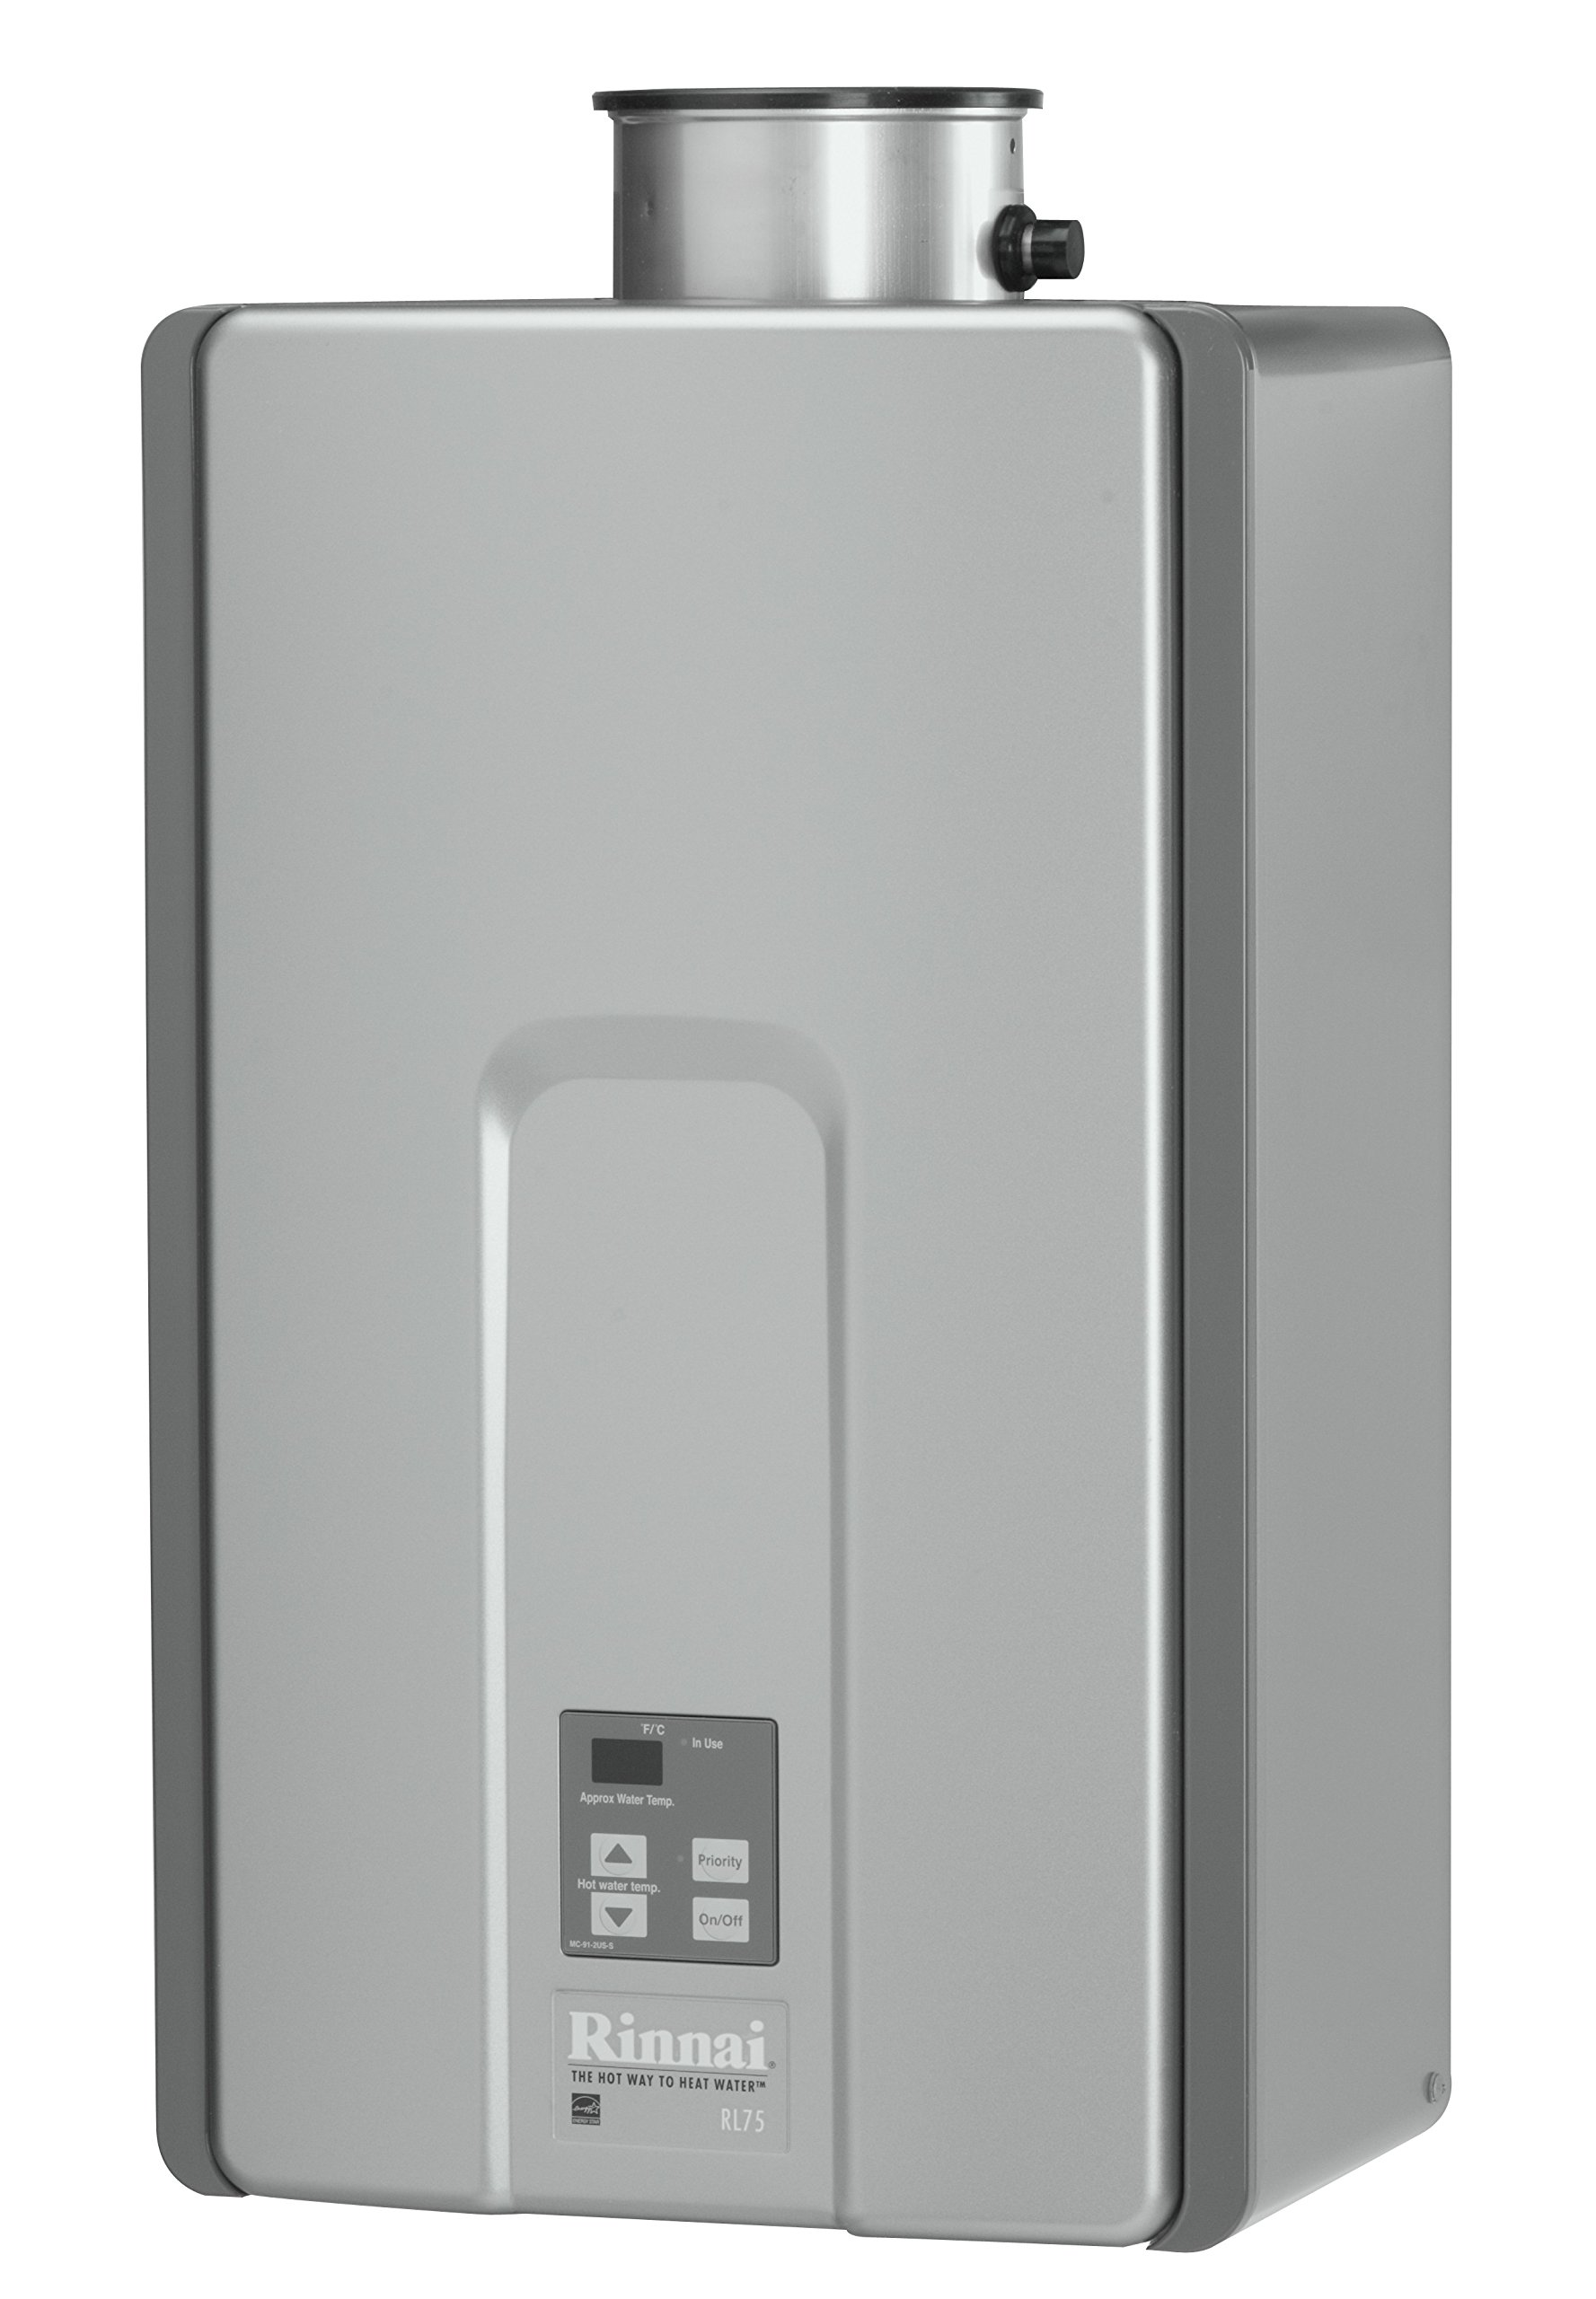 Rinnai RL75iN Natural Gas Tankless Water Heater, 7.5 Gallons Per Minute by Rinnai (Image #4)